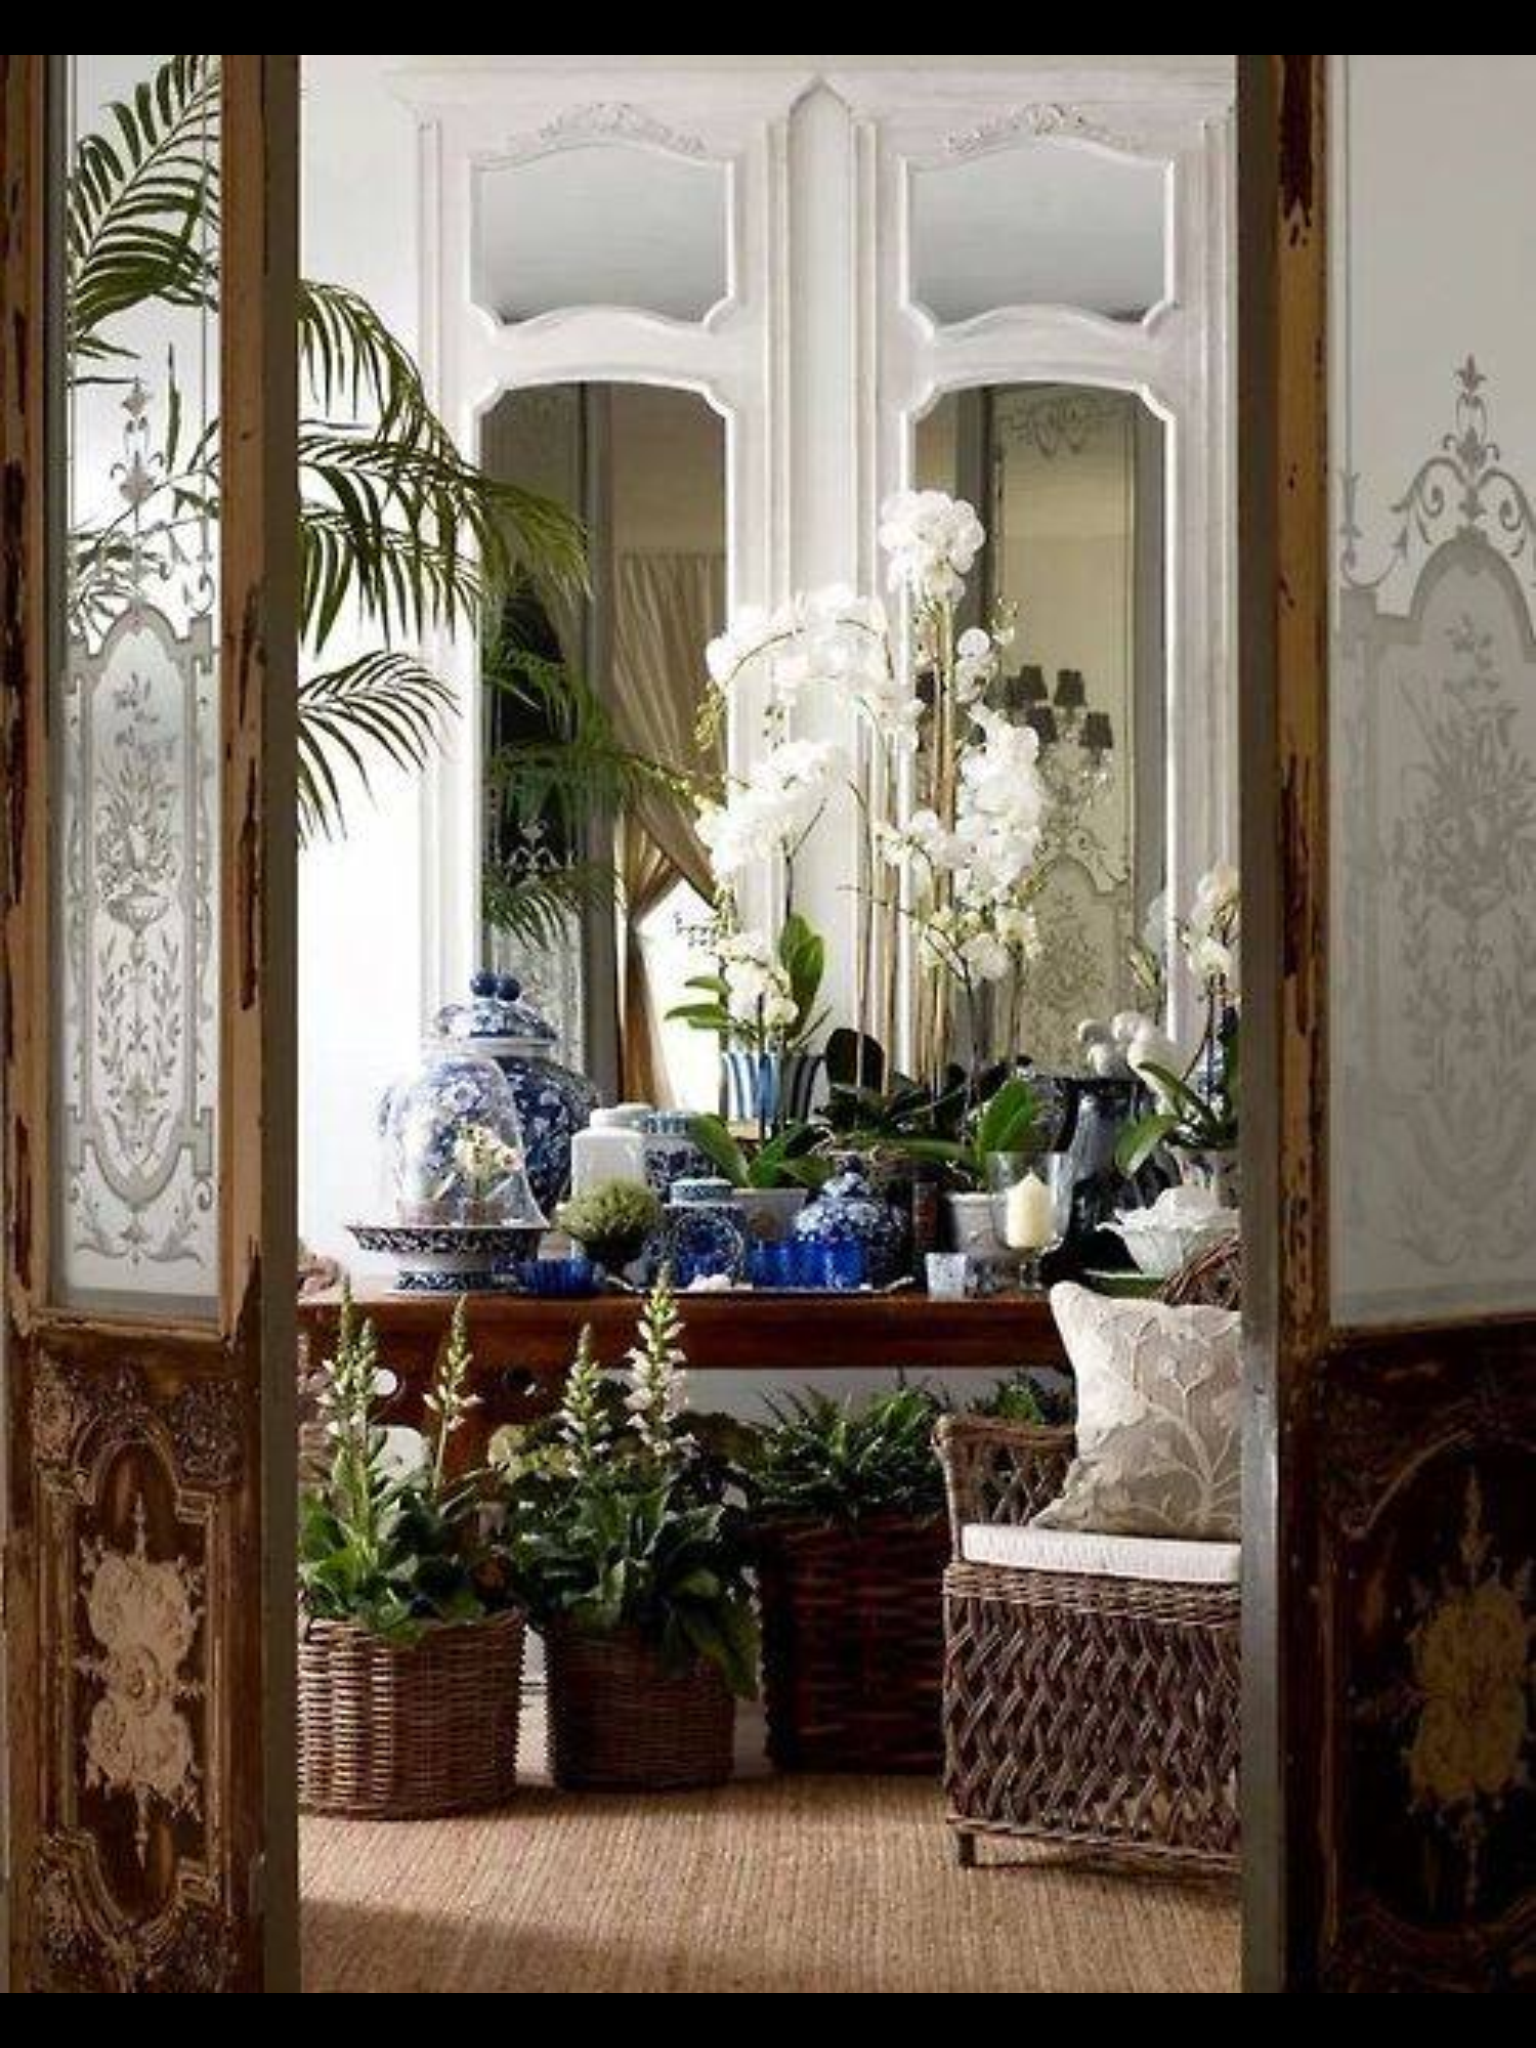 Salon Style Colonial Houseofvdm Love British Colonial Chinoiserie Chic